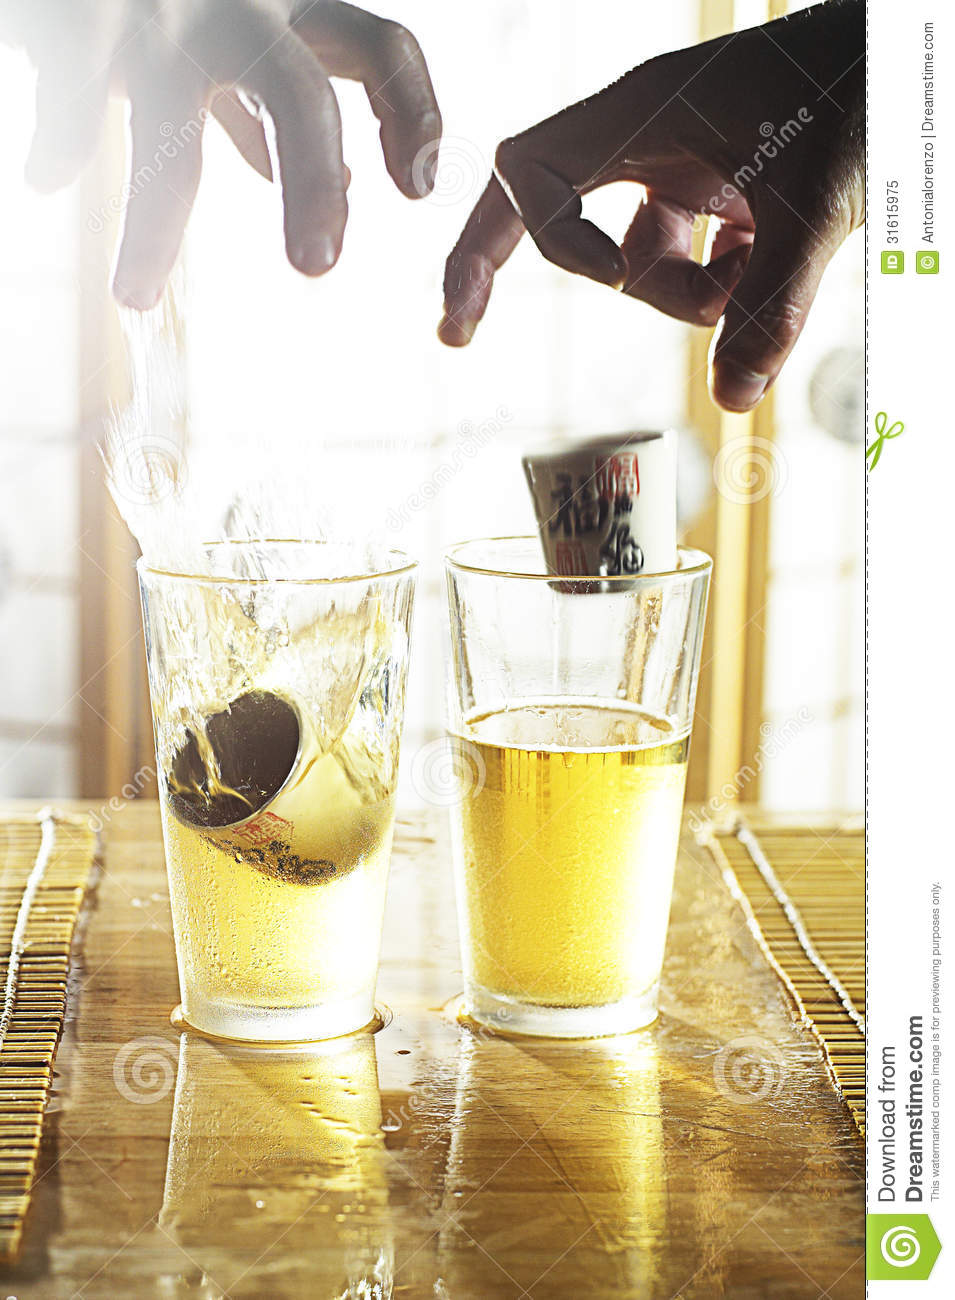 Sake Bomb Royalty Free Stock Photo - Image: 31615975